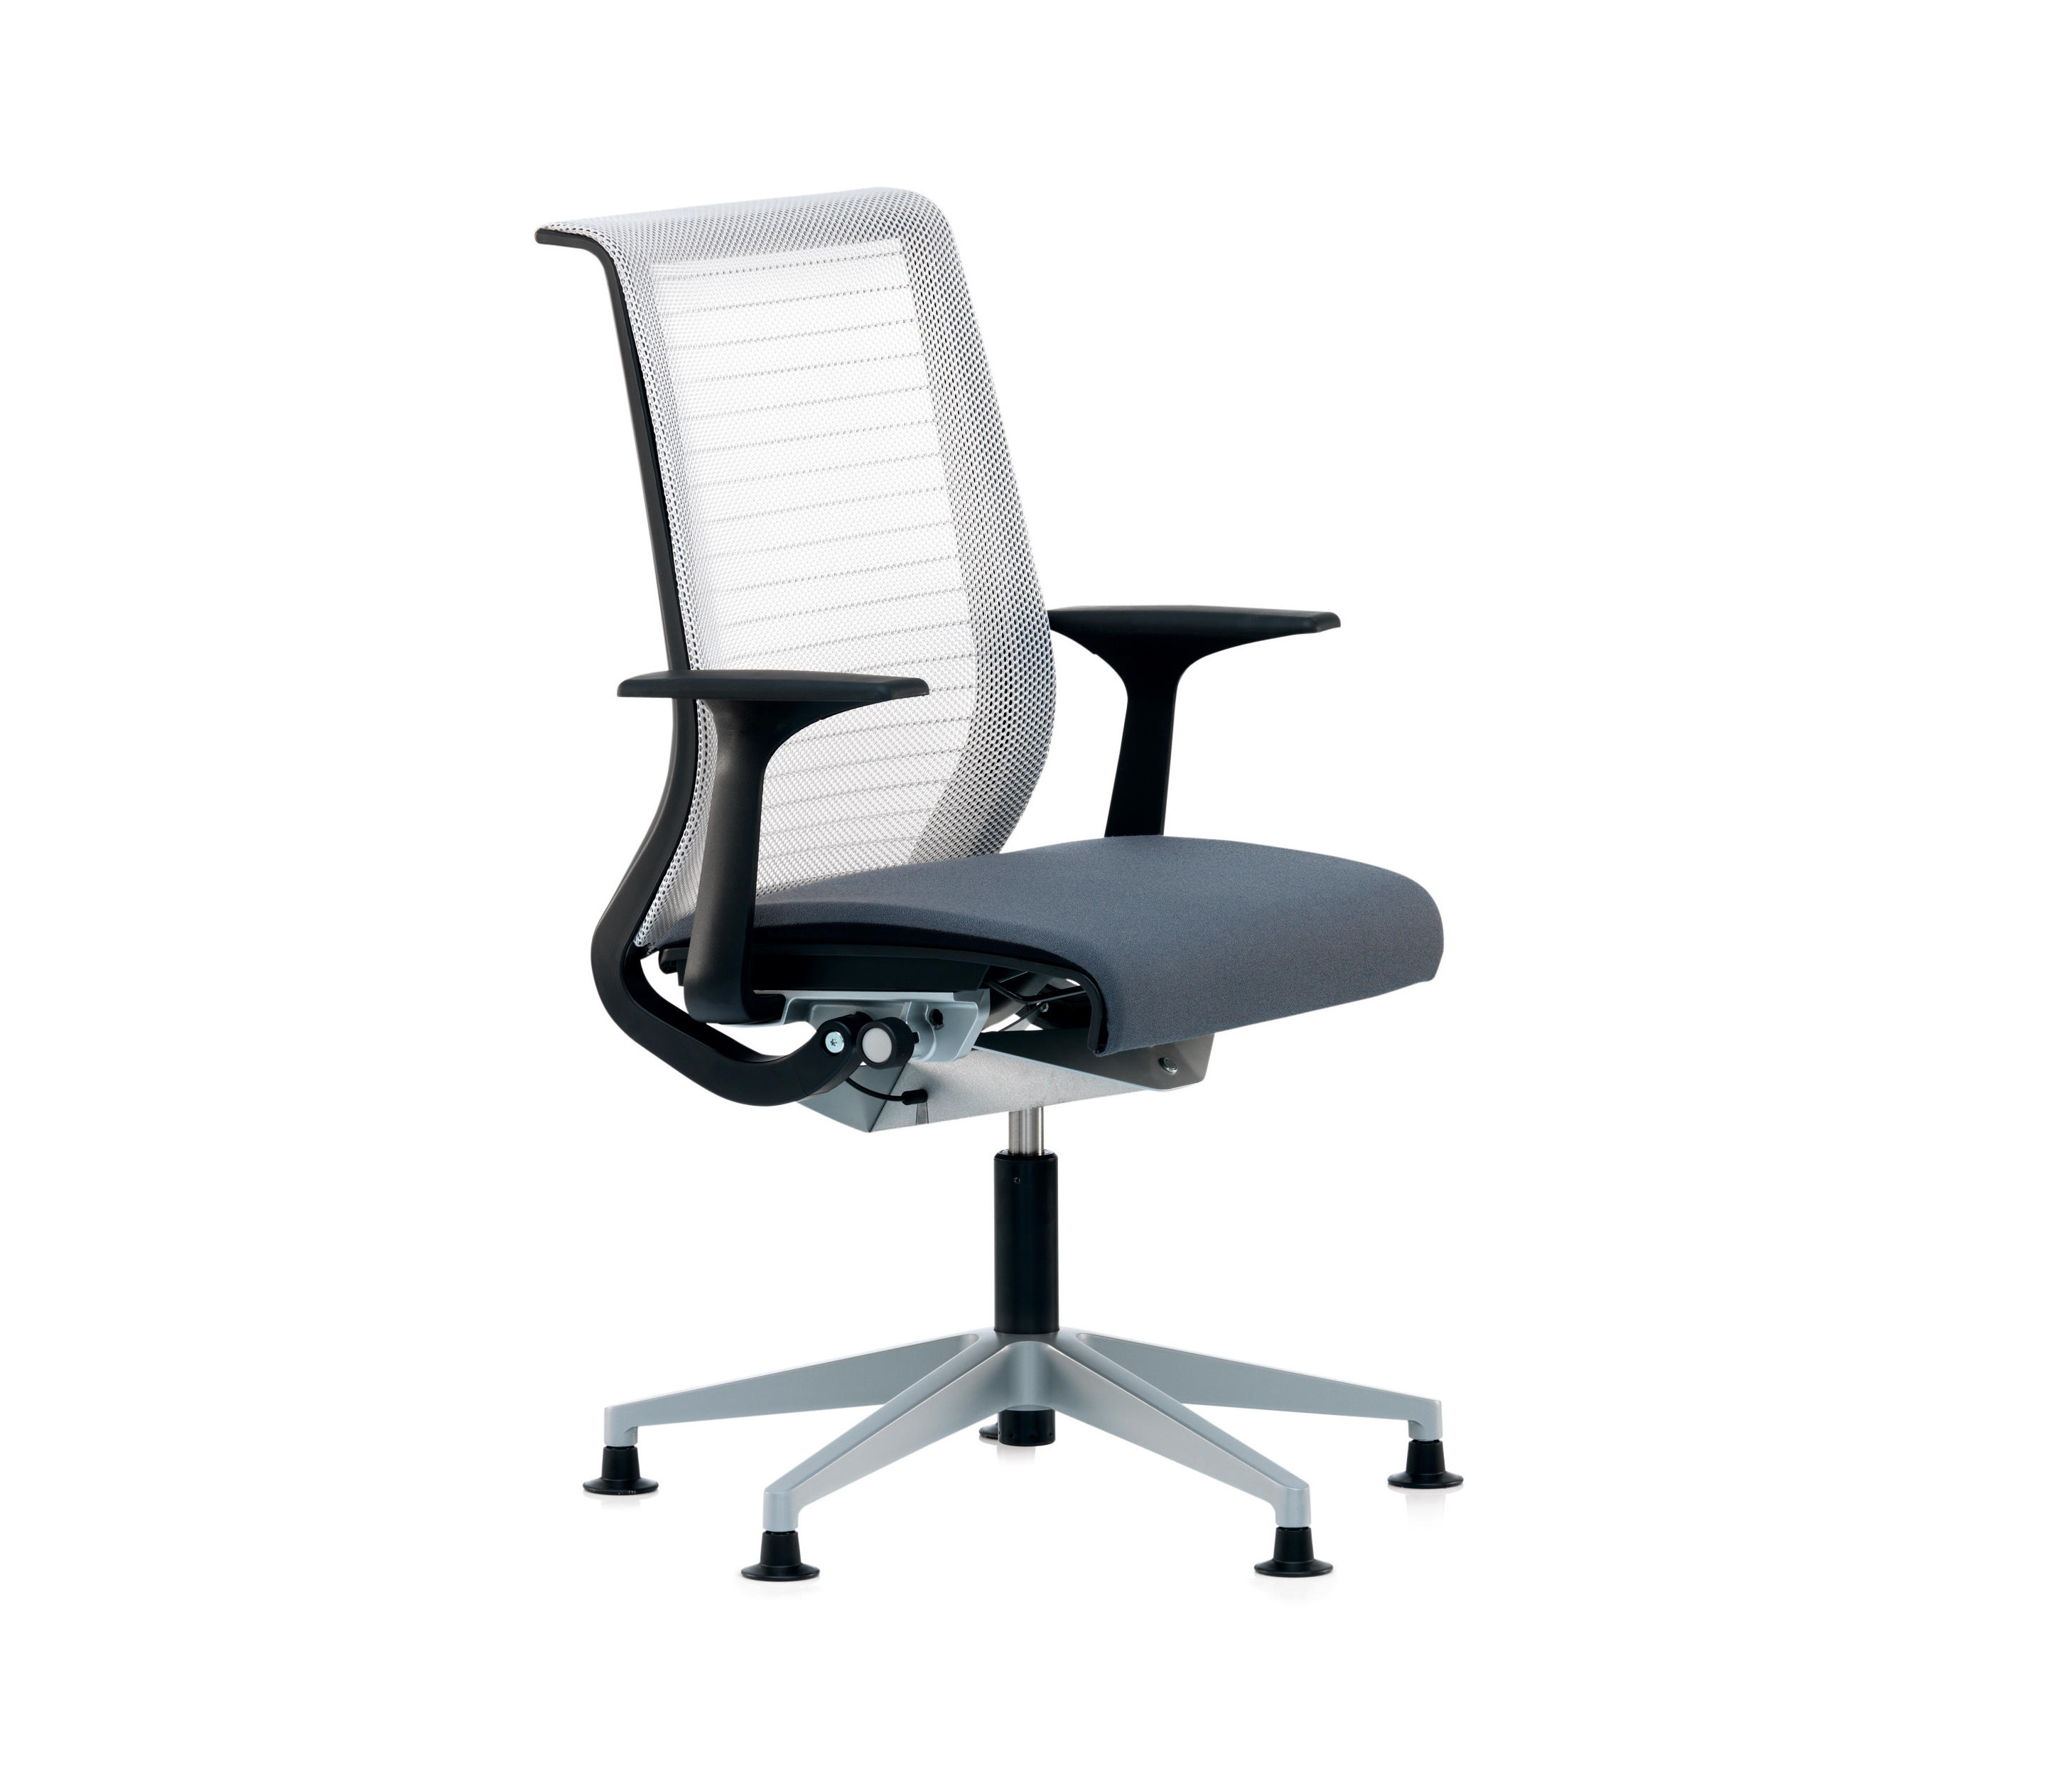 Think task chairs from steelcase architonic for Steelcase chairs